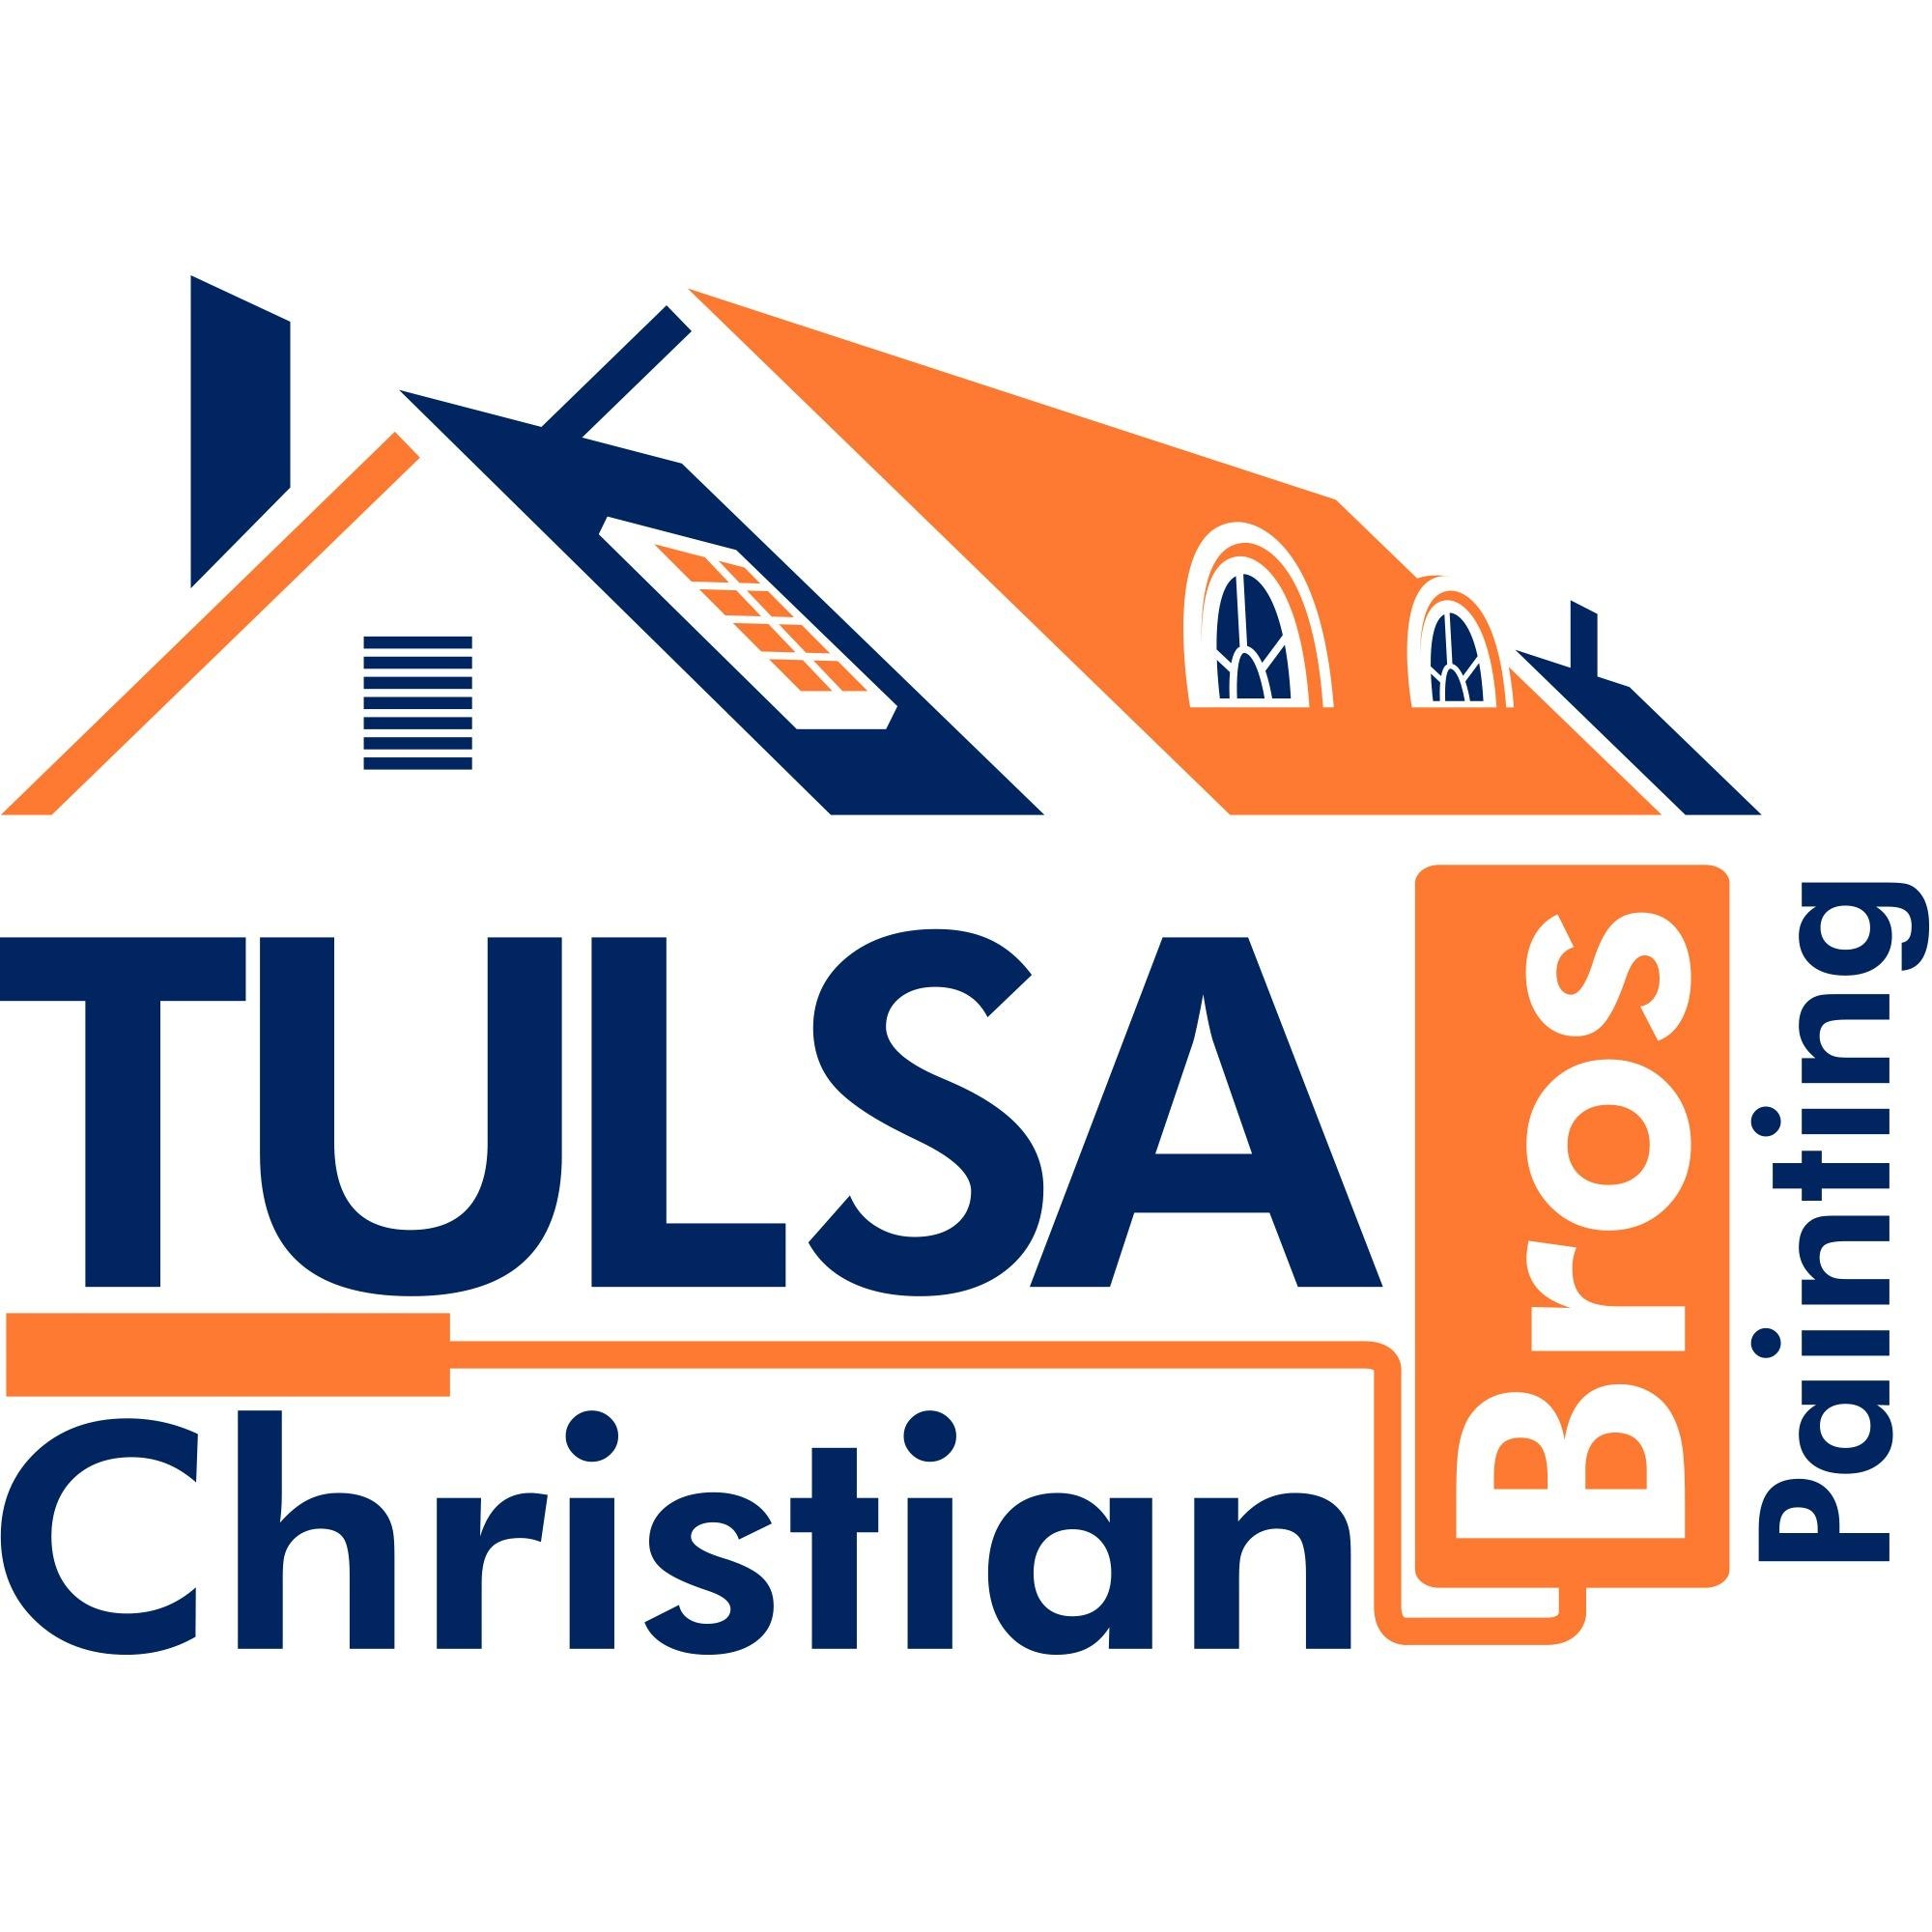 Tulsa Christian Bros Painting - Broken Arrow, OK - Painters & Painting Contractors